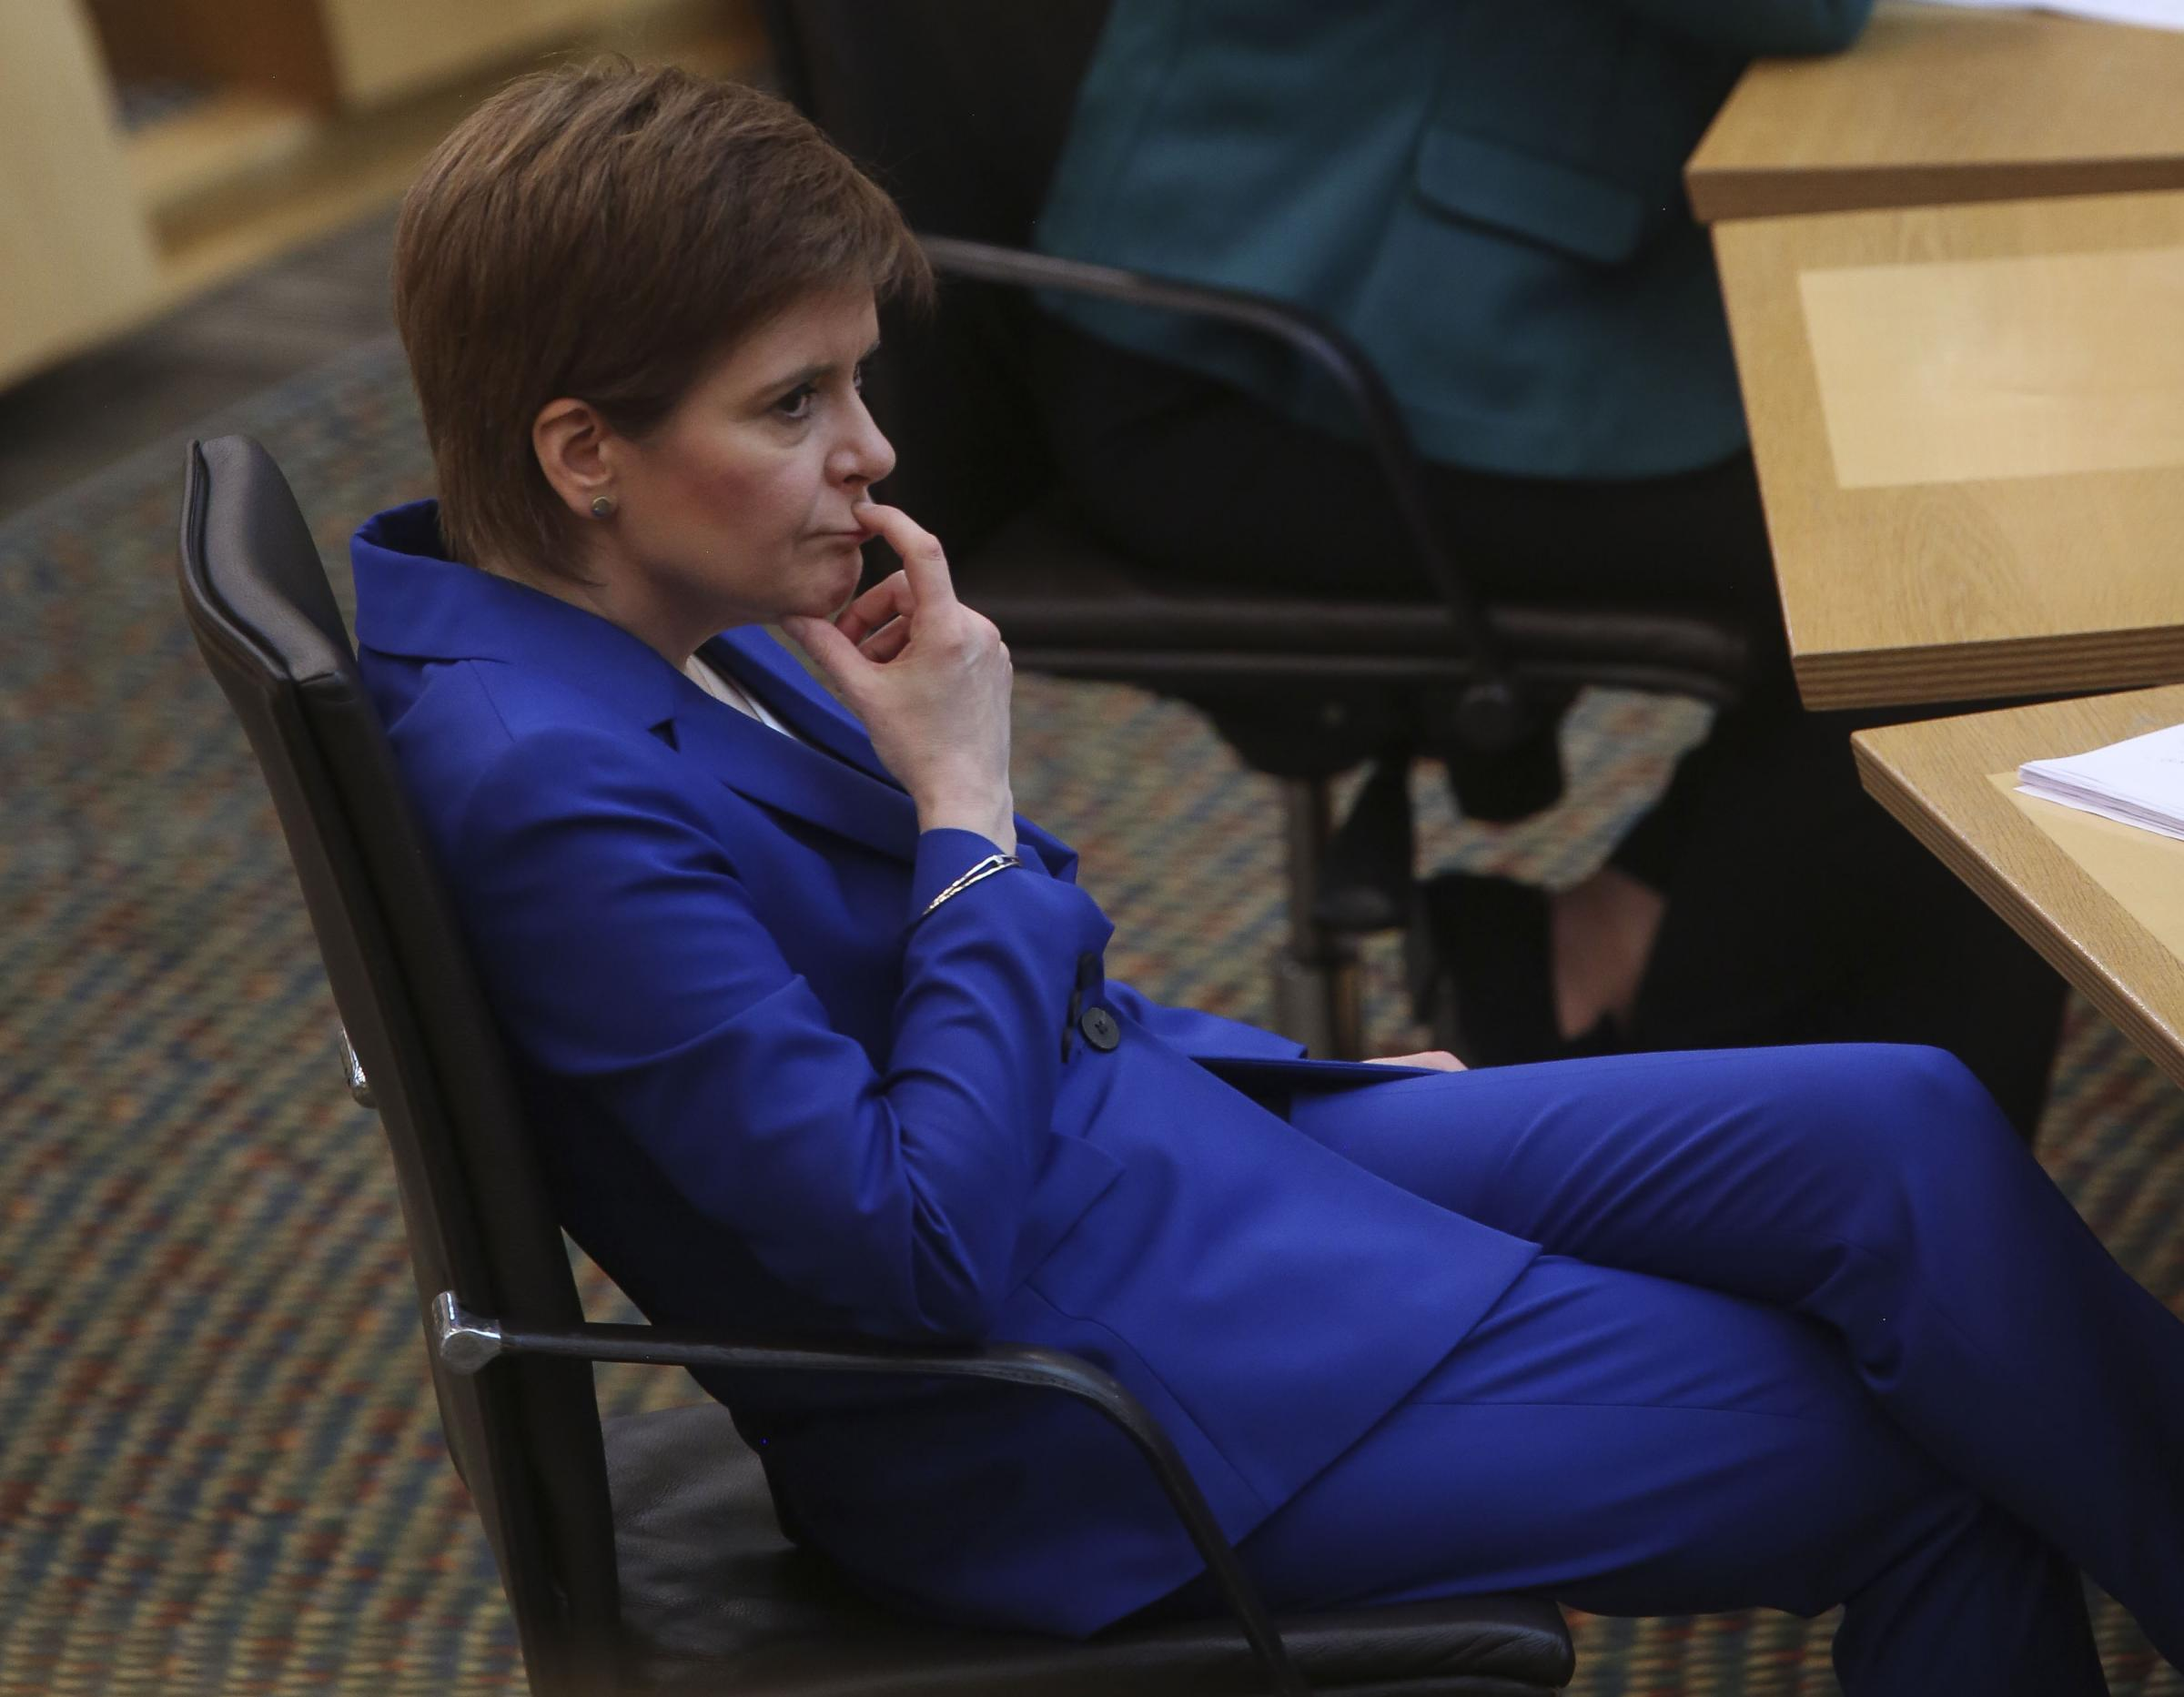 Running Scotland and pushing for indy is too much for one person